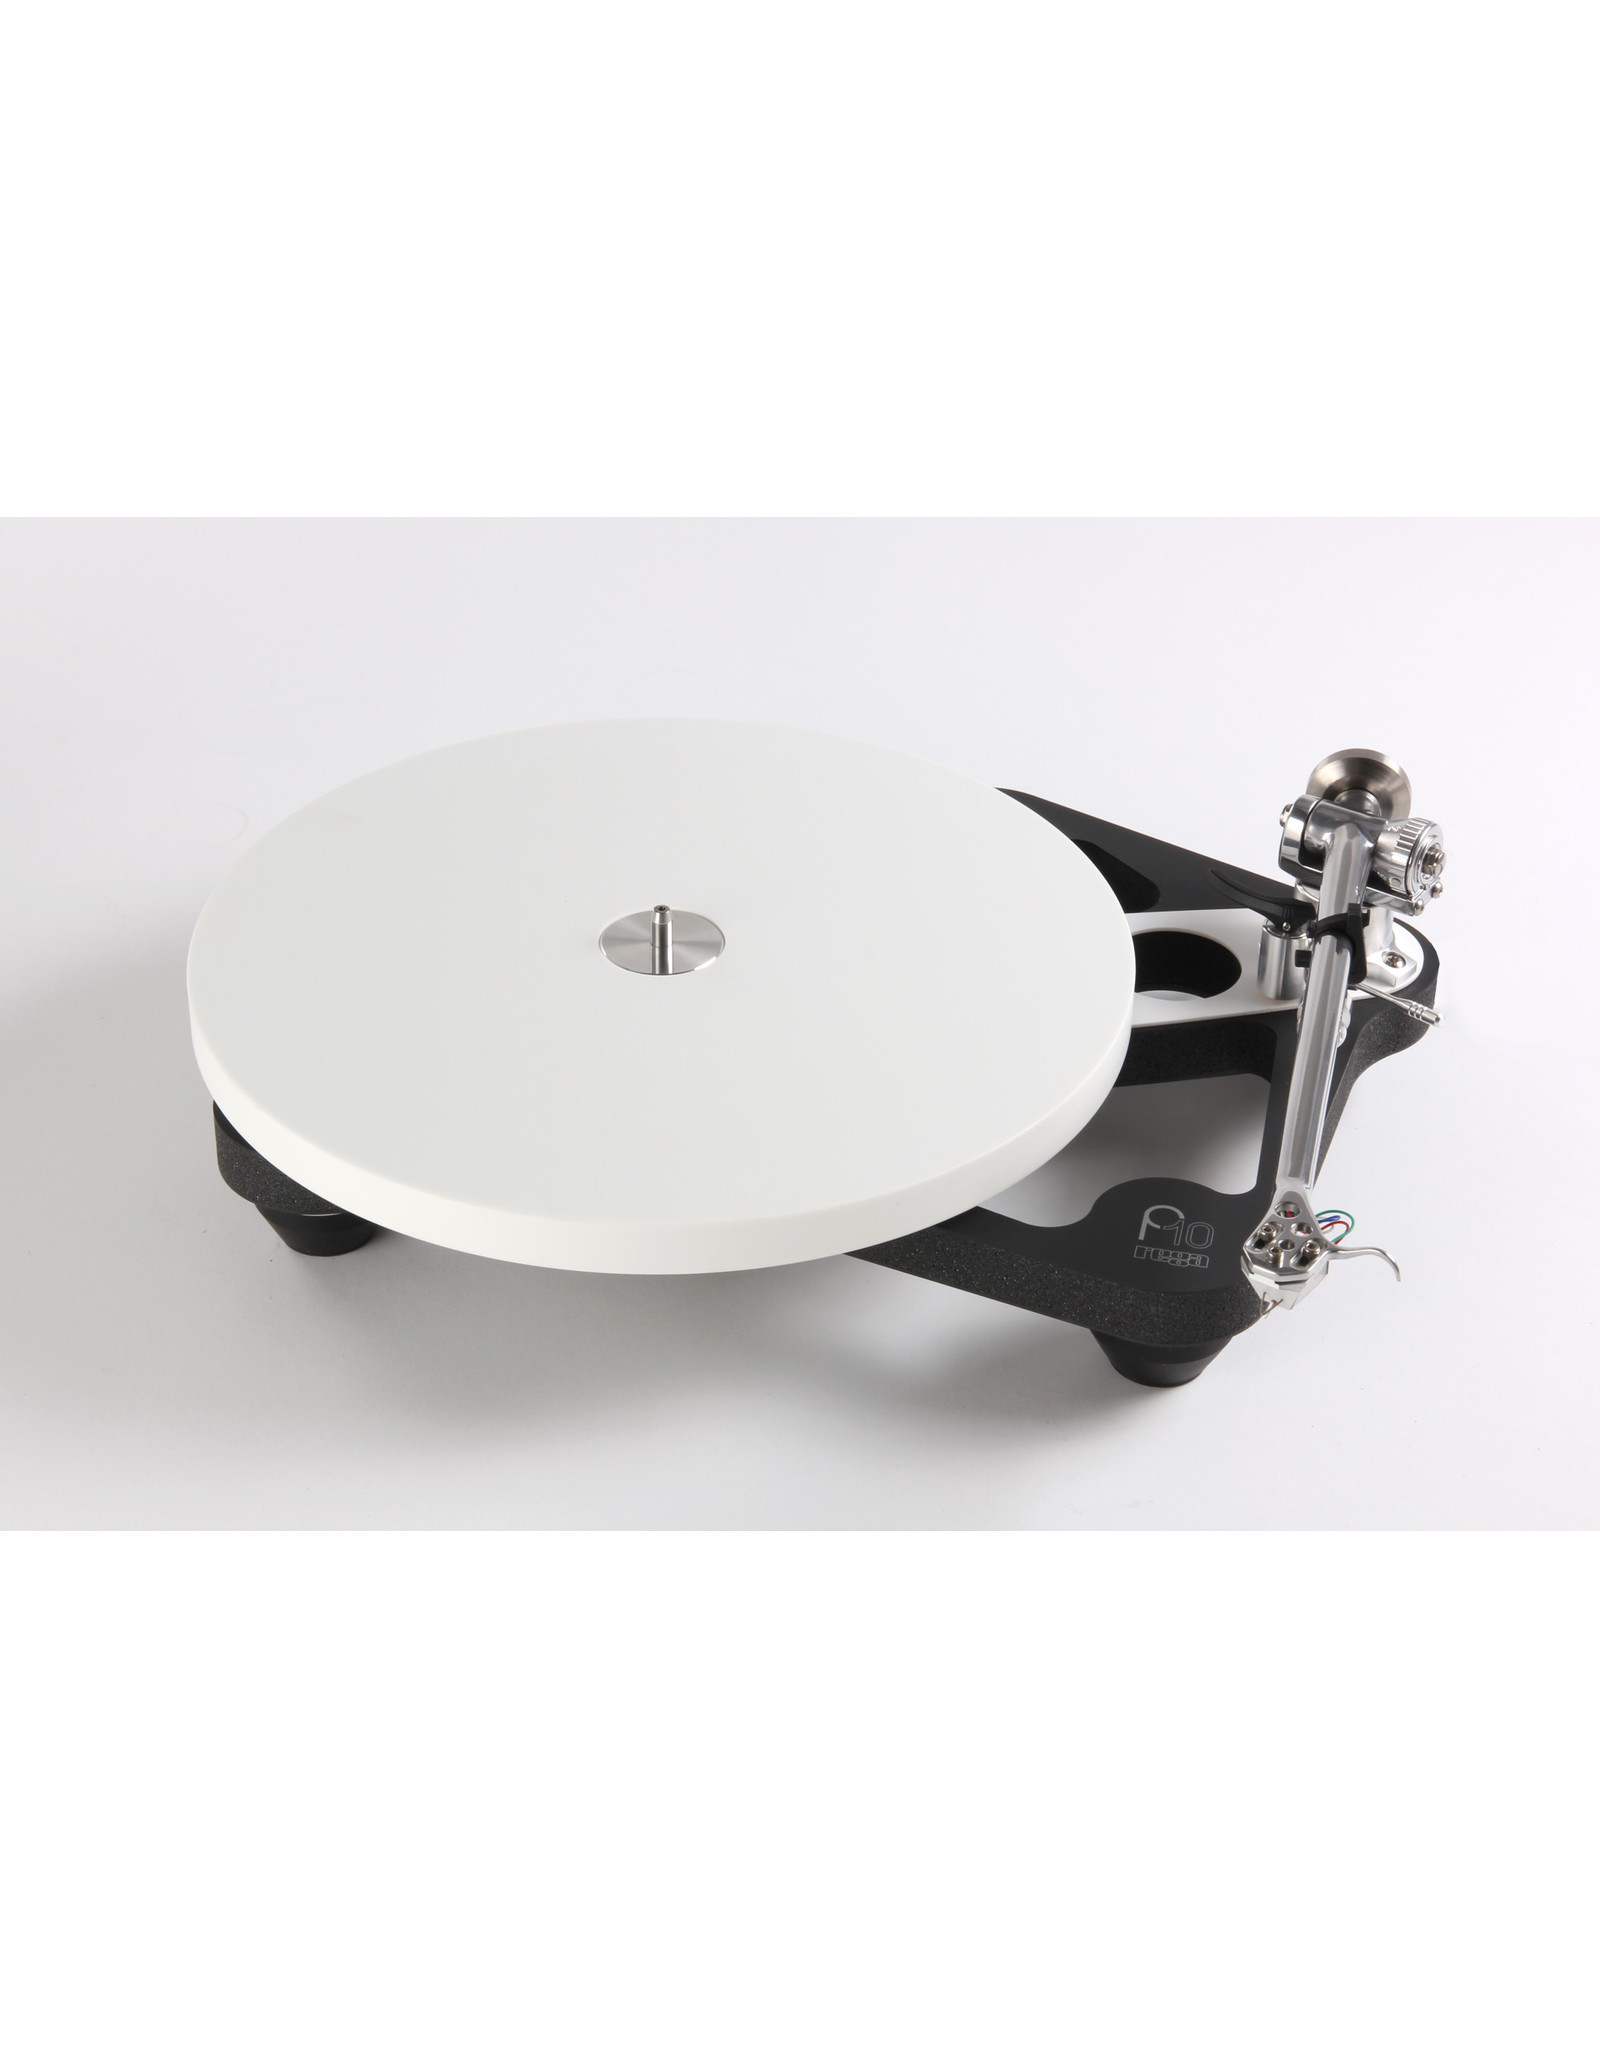 Rega Rega Planar 10 Turntable